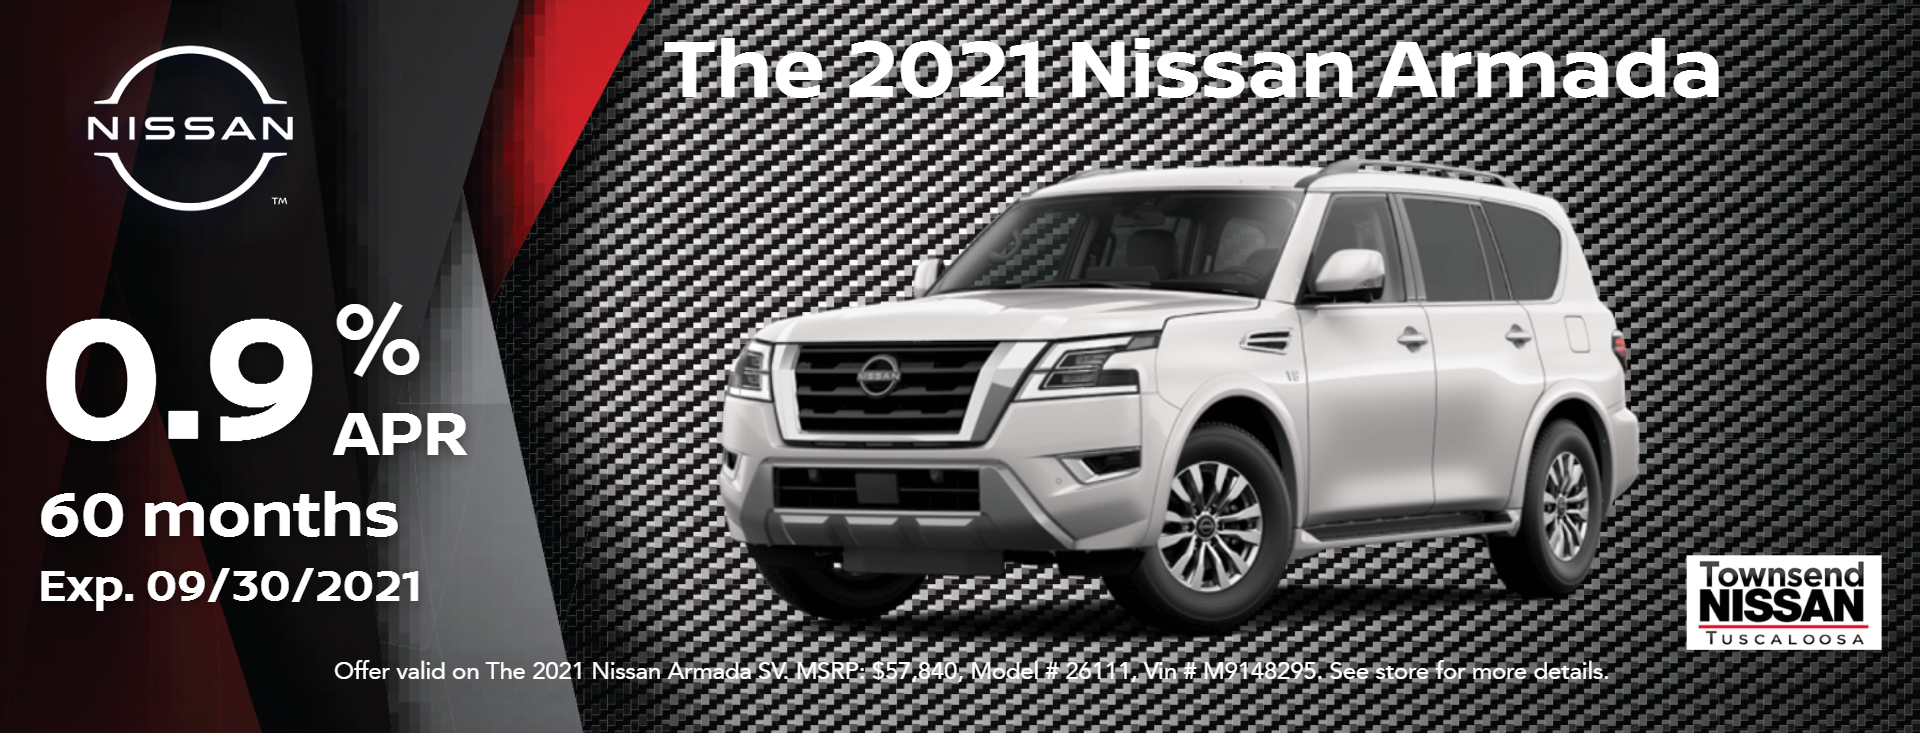 2021_Nissan_Armada_SV_Wed Sep 15 2021 10_17_40 GMT-0500 (Central Daylight Time)